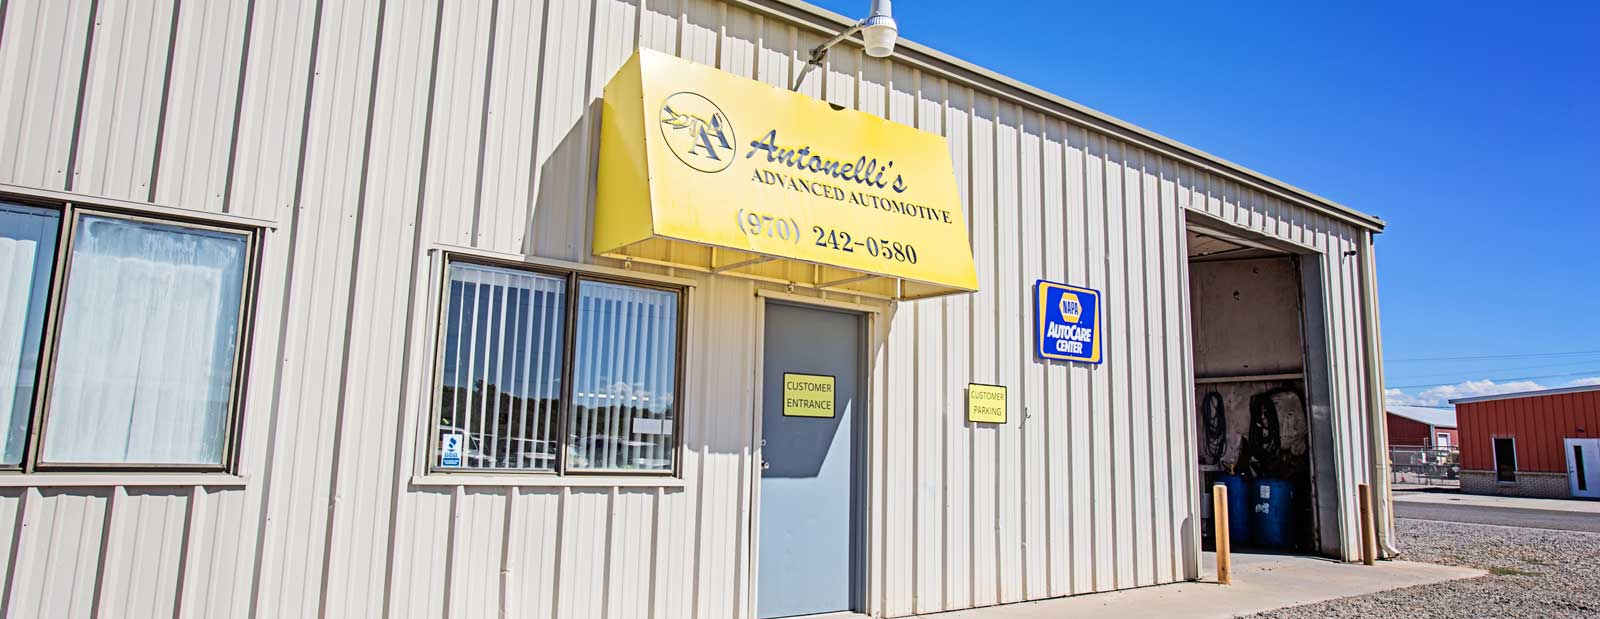 Auto Mechanic Shop in Grand Junction, CO